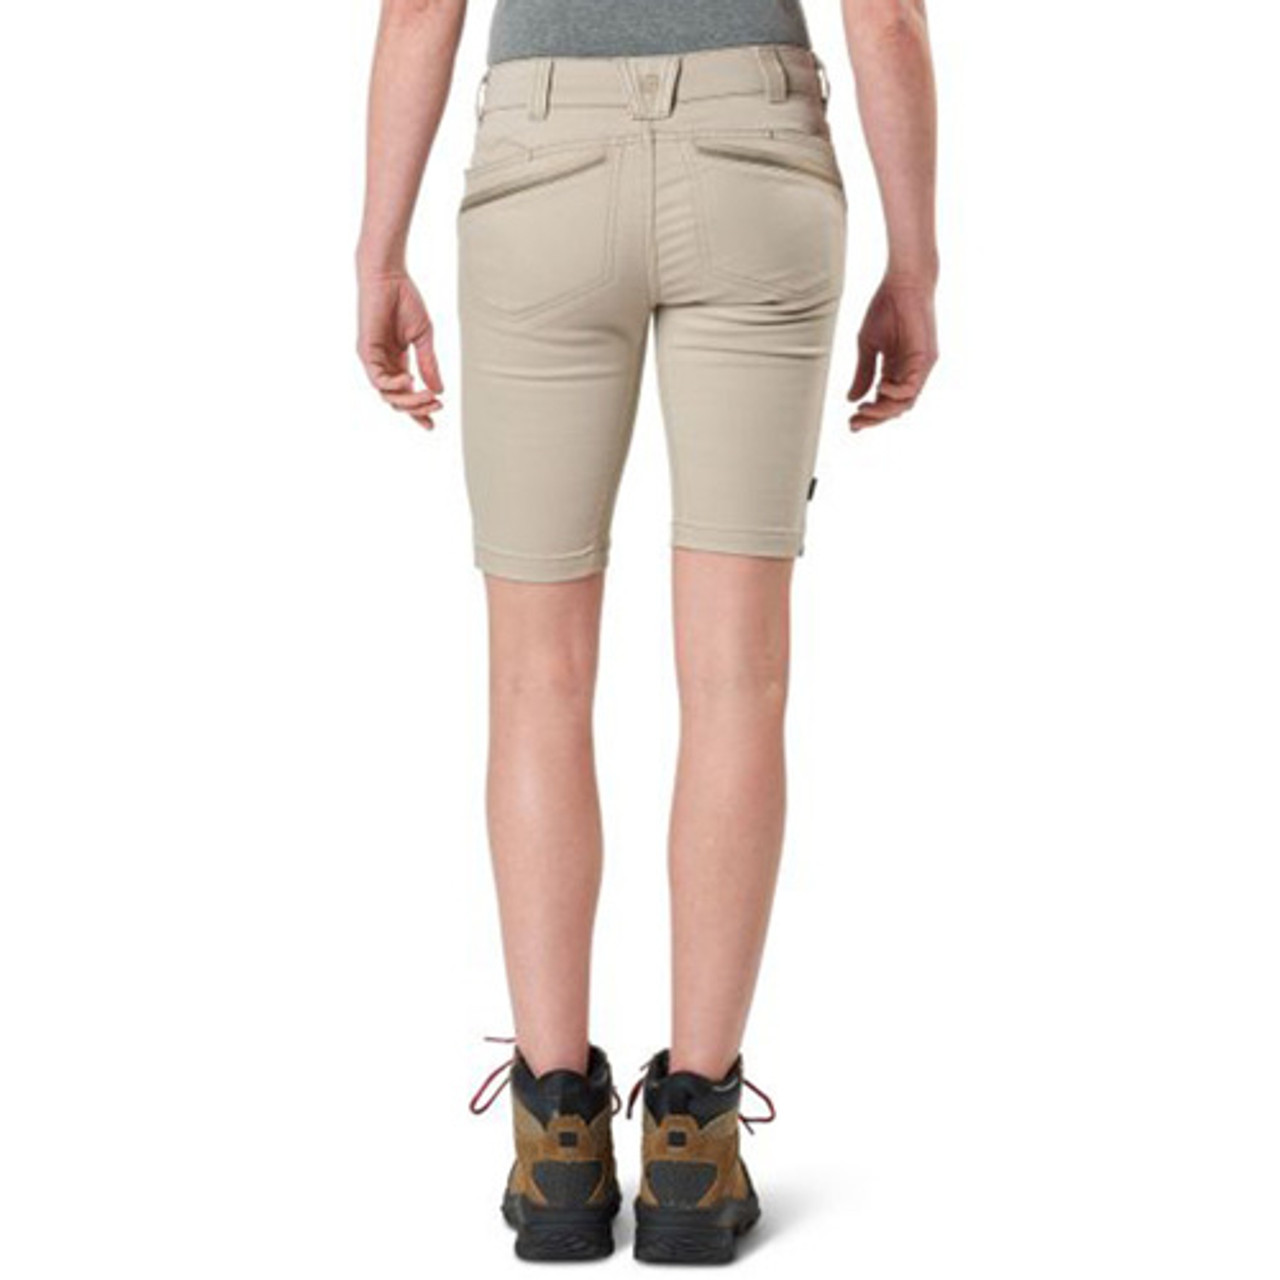 5.11 Tactical Triumph Women's Short, available in Black, Khaki, and Grenade 63307